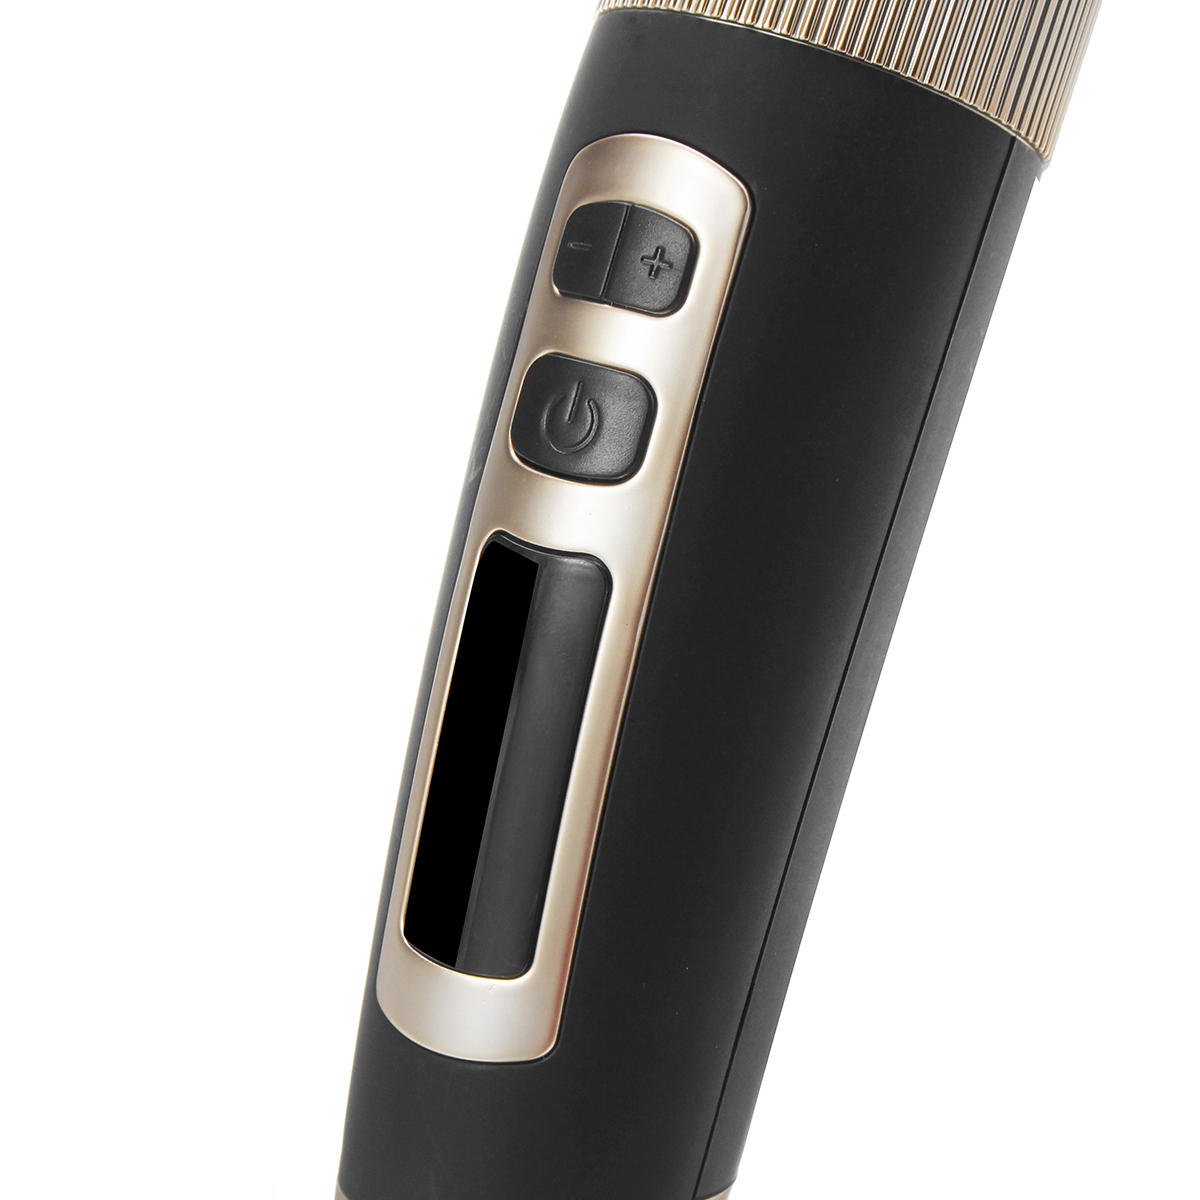 LCD Rechargeable Pet Hair Trimmer Low noise Cordless Electric Clipper Hair Remover Cutter with Comb for Cat Dog Grooming Tools - 5